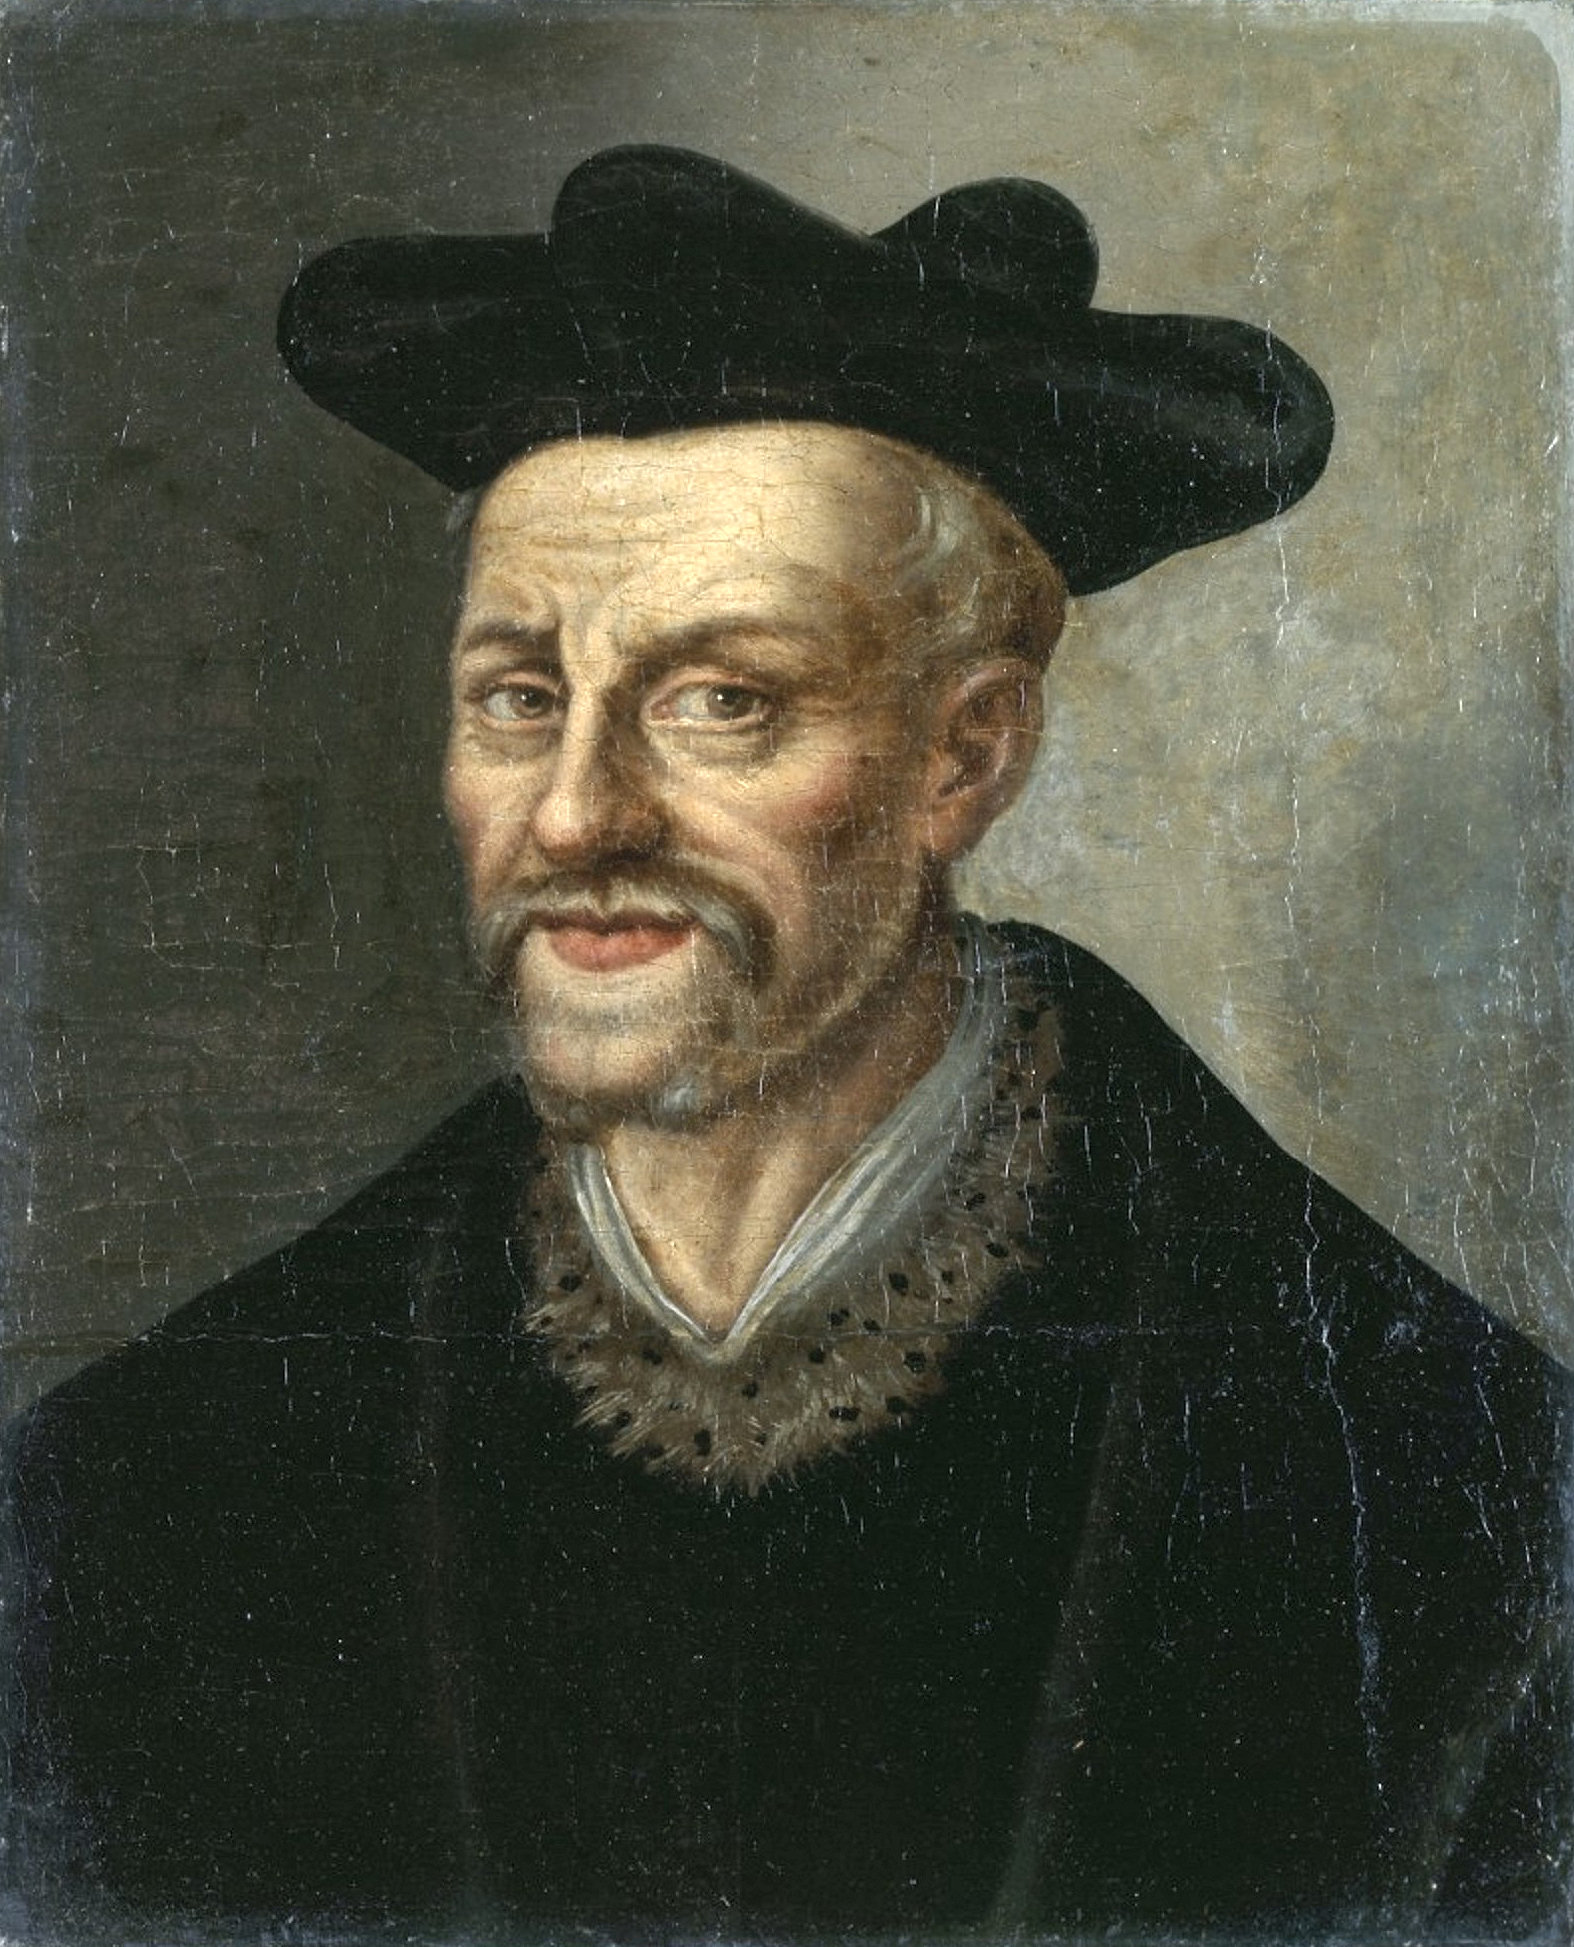 http://upload.wikimedia.org/wikipedia/commons/8/8d/Francois_Rabelais_-_Portrait.jpg